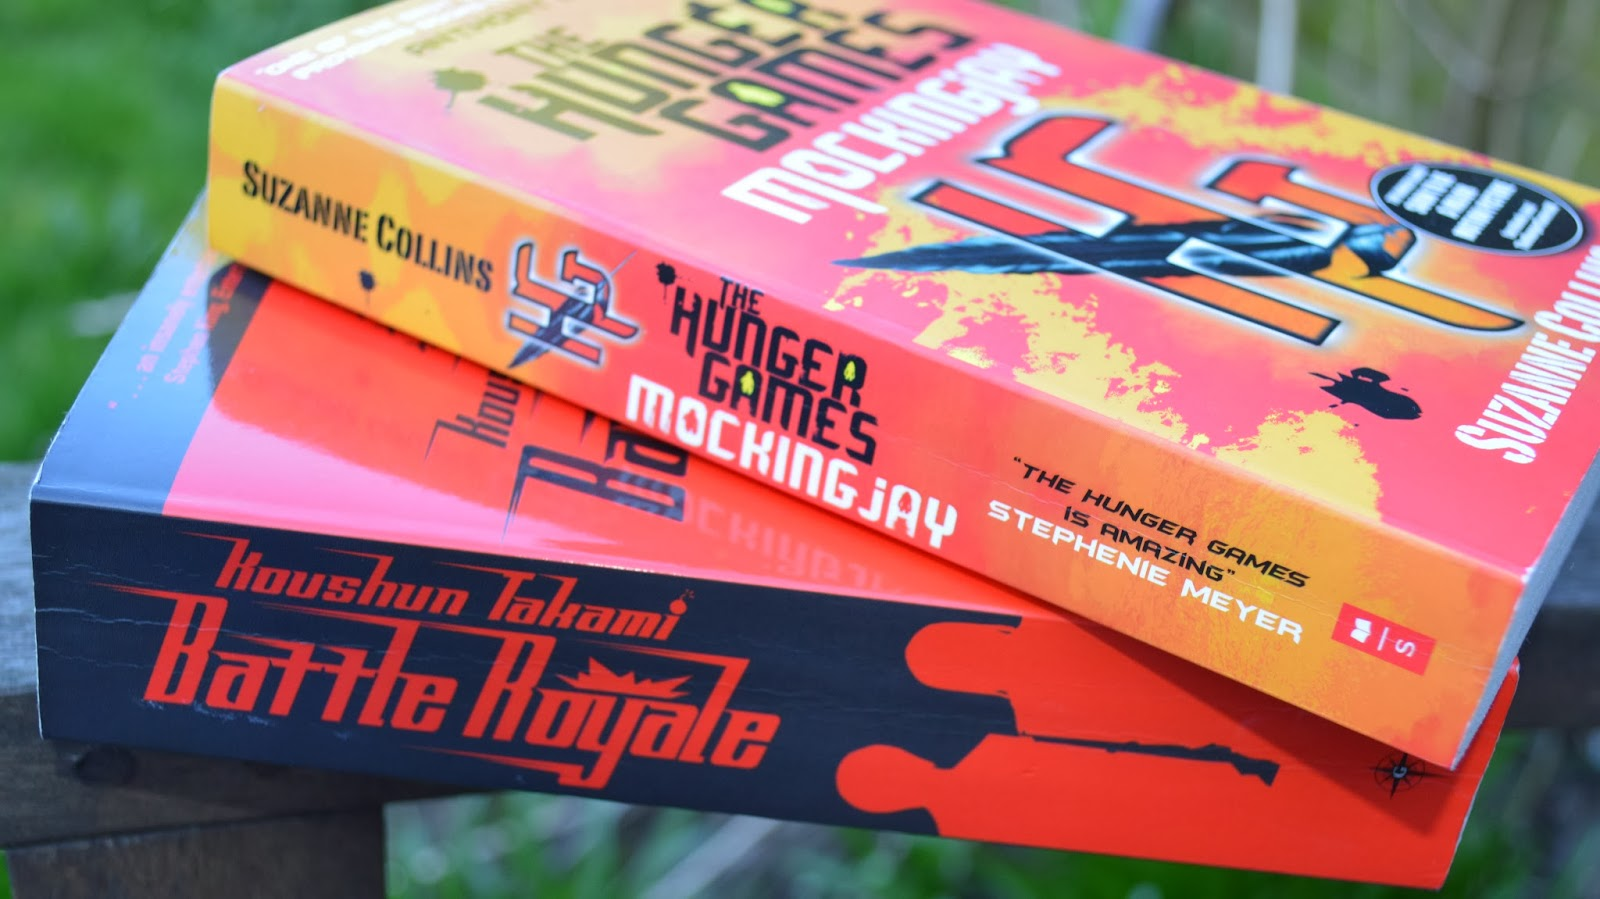 The Hunger Games, Mockingjay, Battle Royale, Koushun Takami, Japanese literature, fiction, American Literature, translation, book cover, book spines, review, book&cuppa, Book and a cuppa, bookandacuppa book & a cuppa